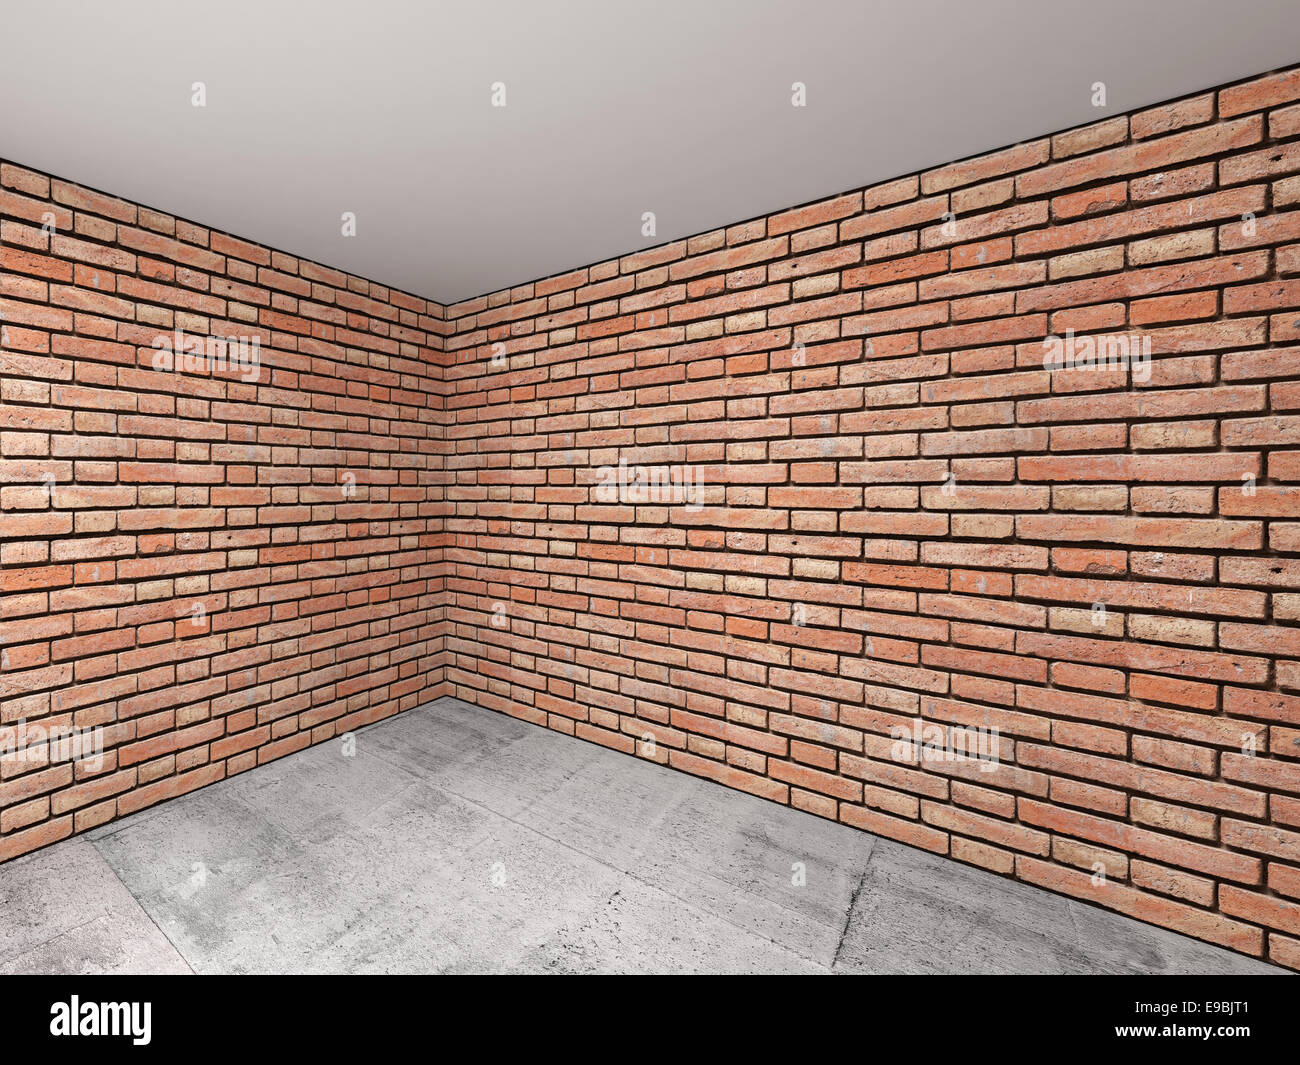 Empty room interior with red brick walls 3d background for Wall pictures